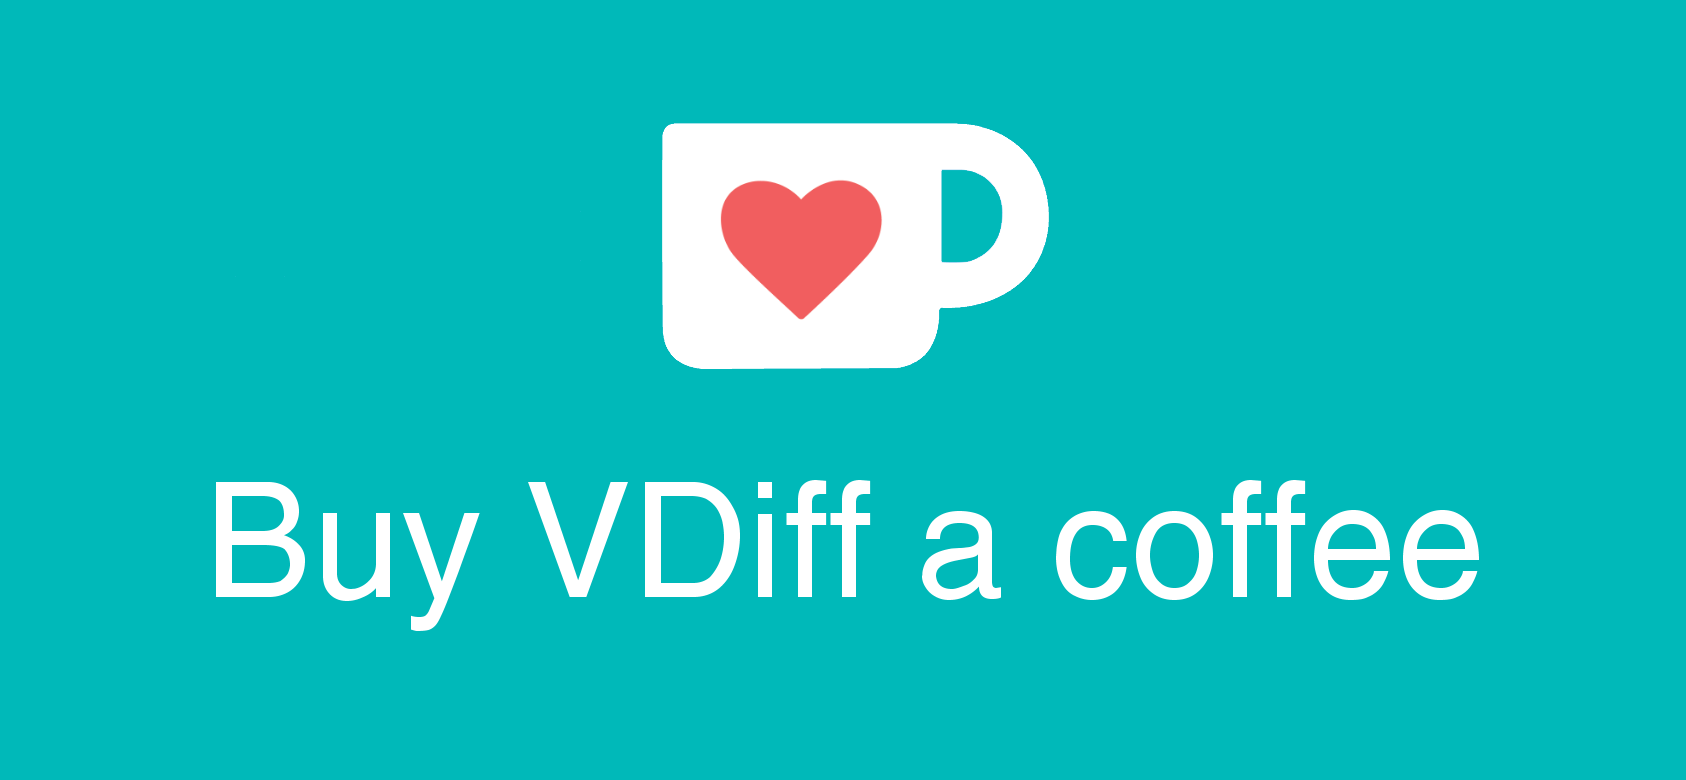 Buy VDiff a coffee